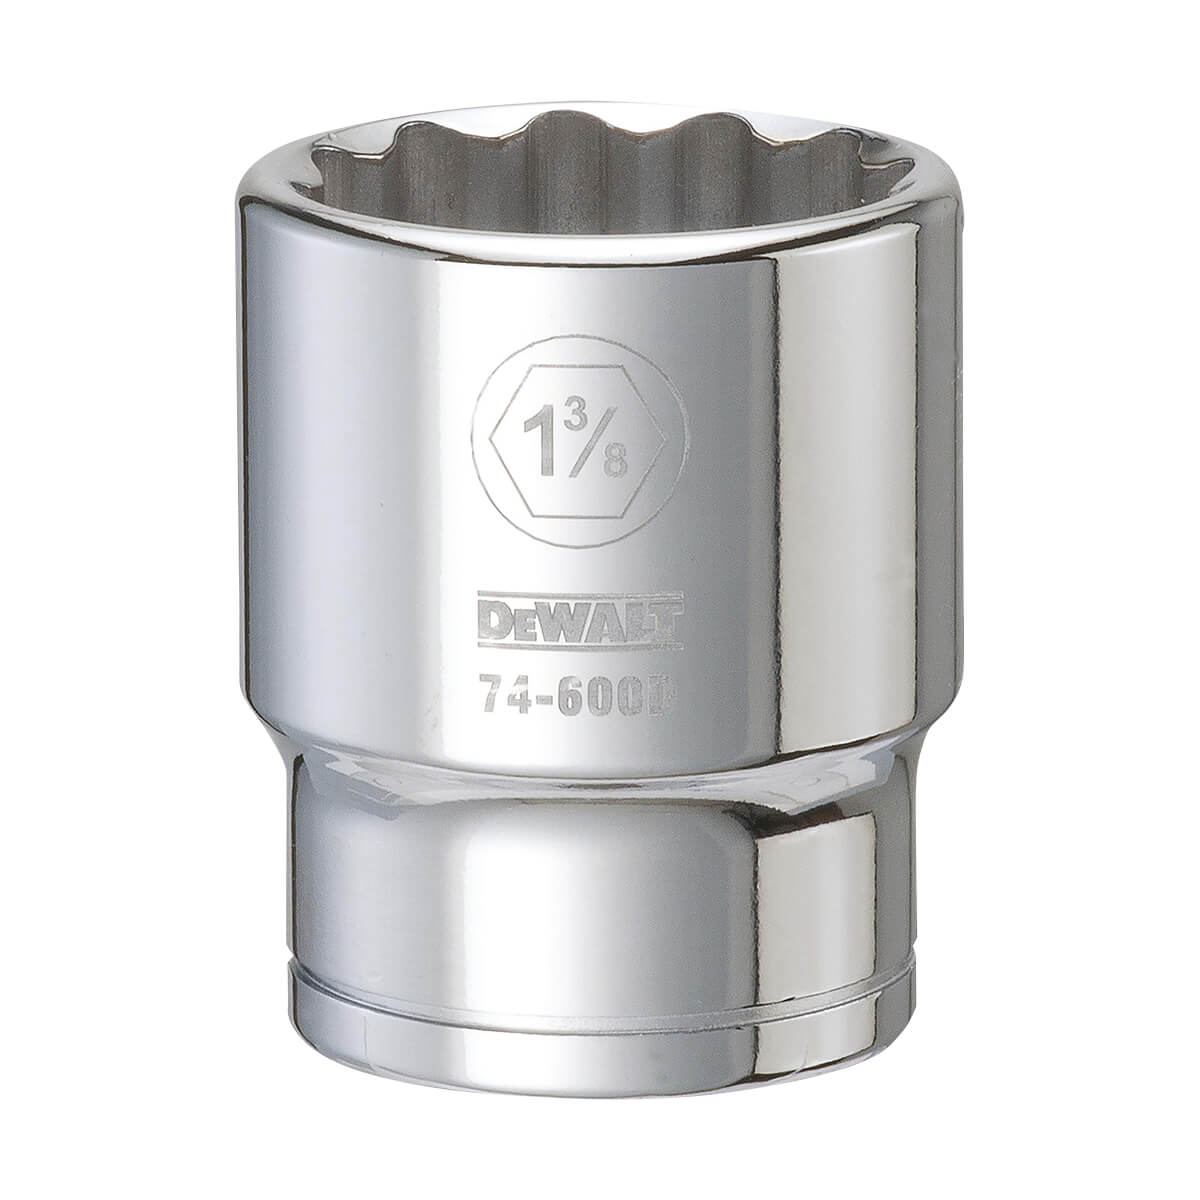 "DEWALT® 12-Point Socket - 3/4"" Drive - Imperial"